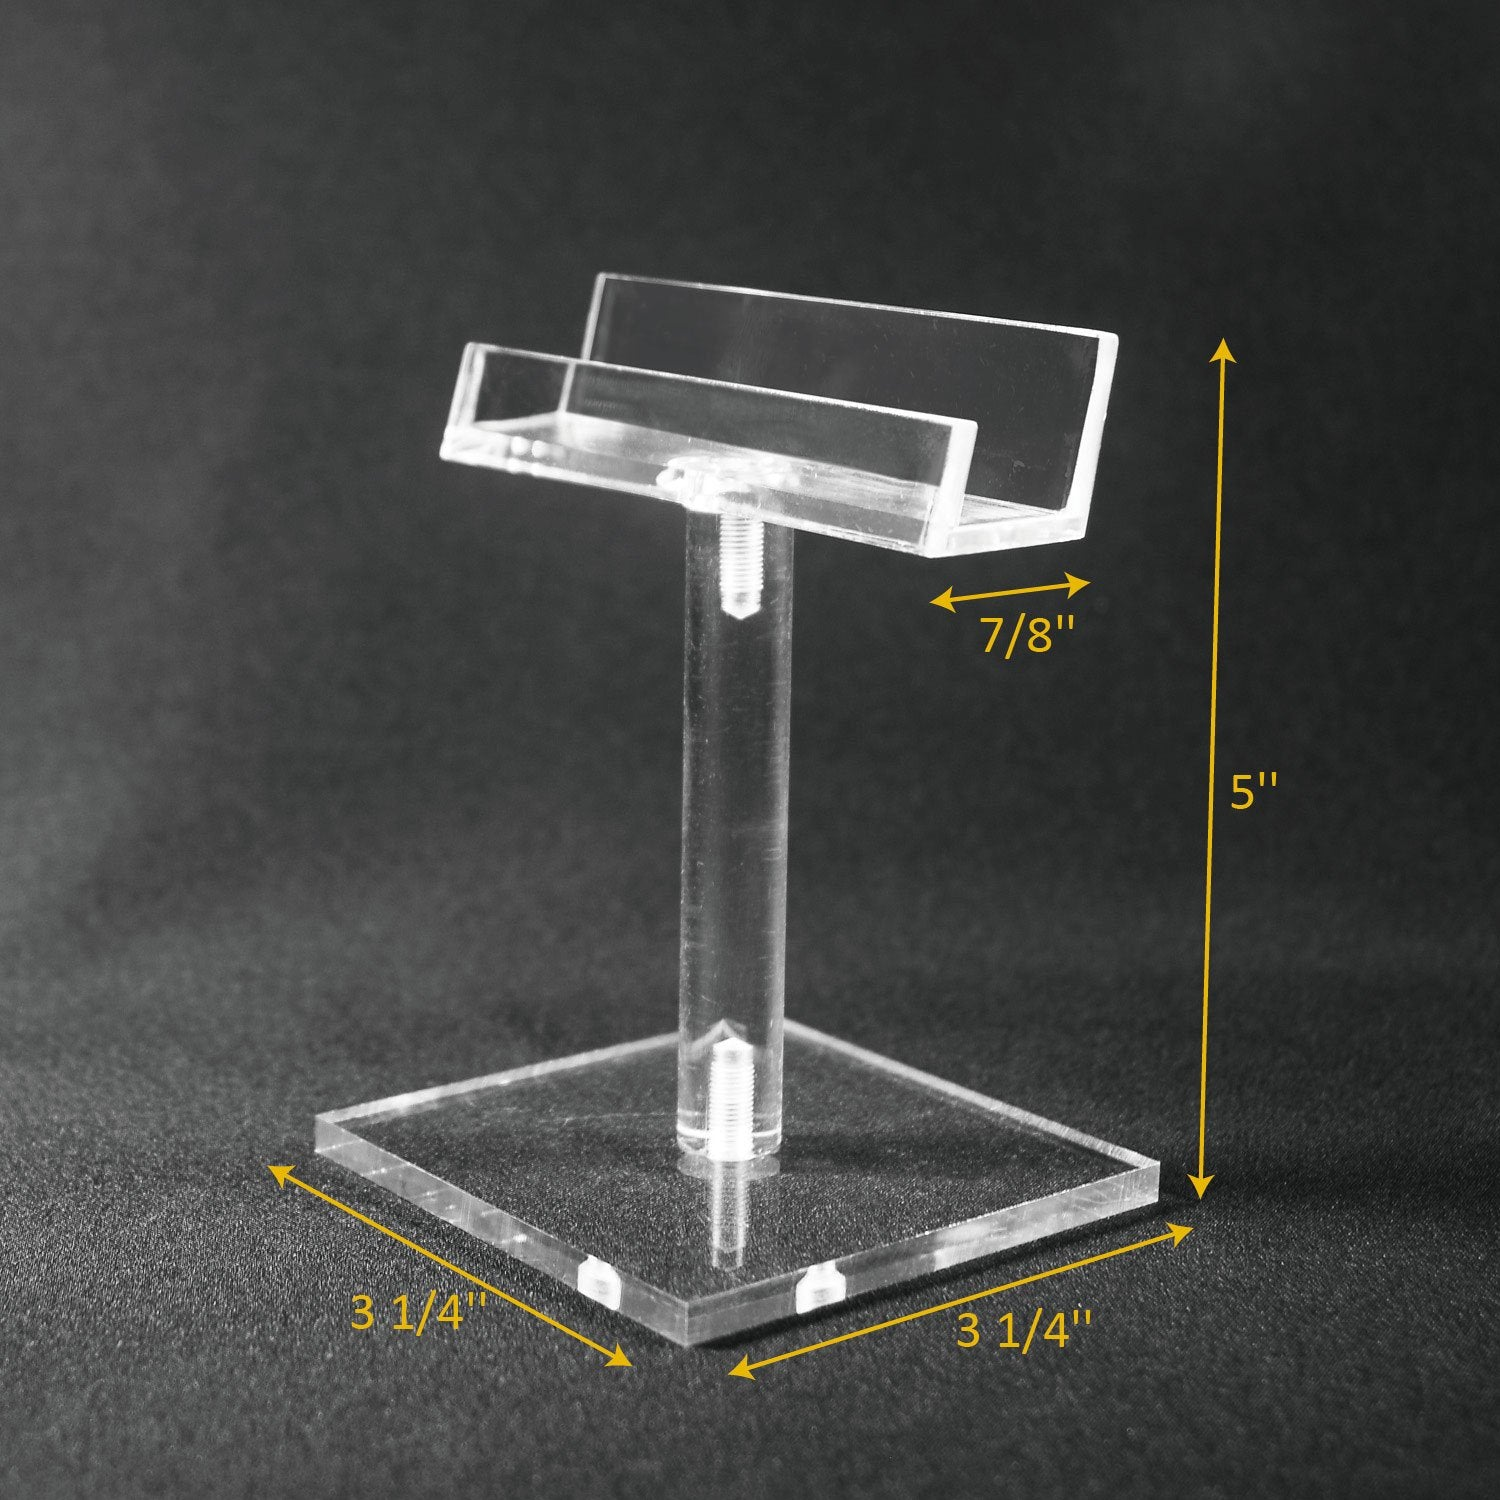 #AC-005 Acrylic Single Eyeglass Frame Stand | APEX International